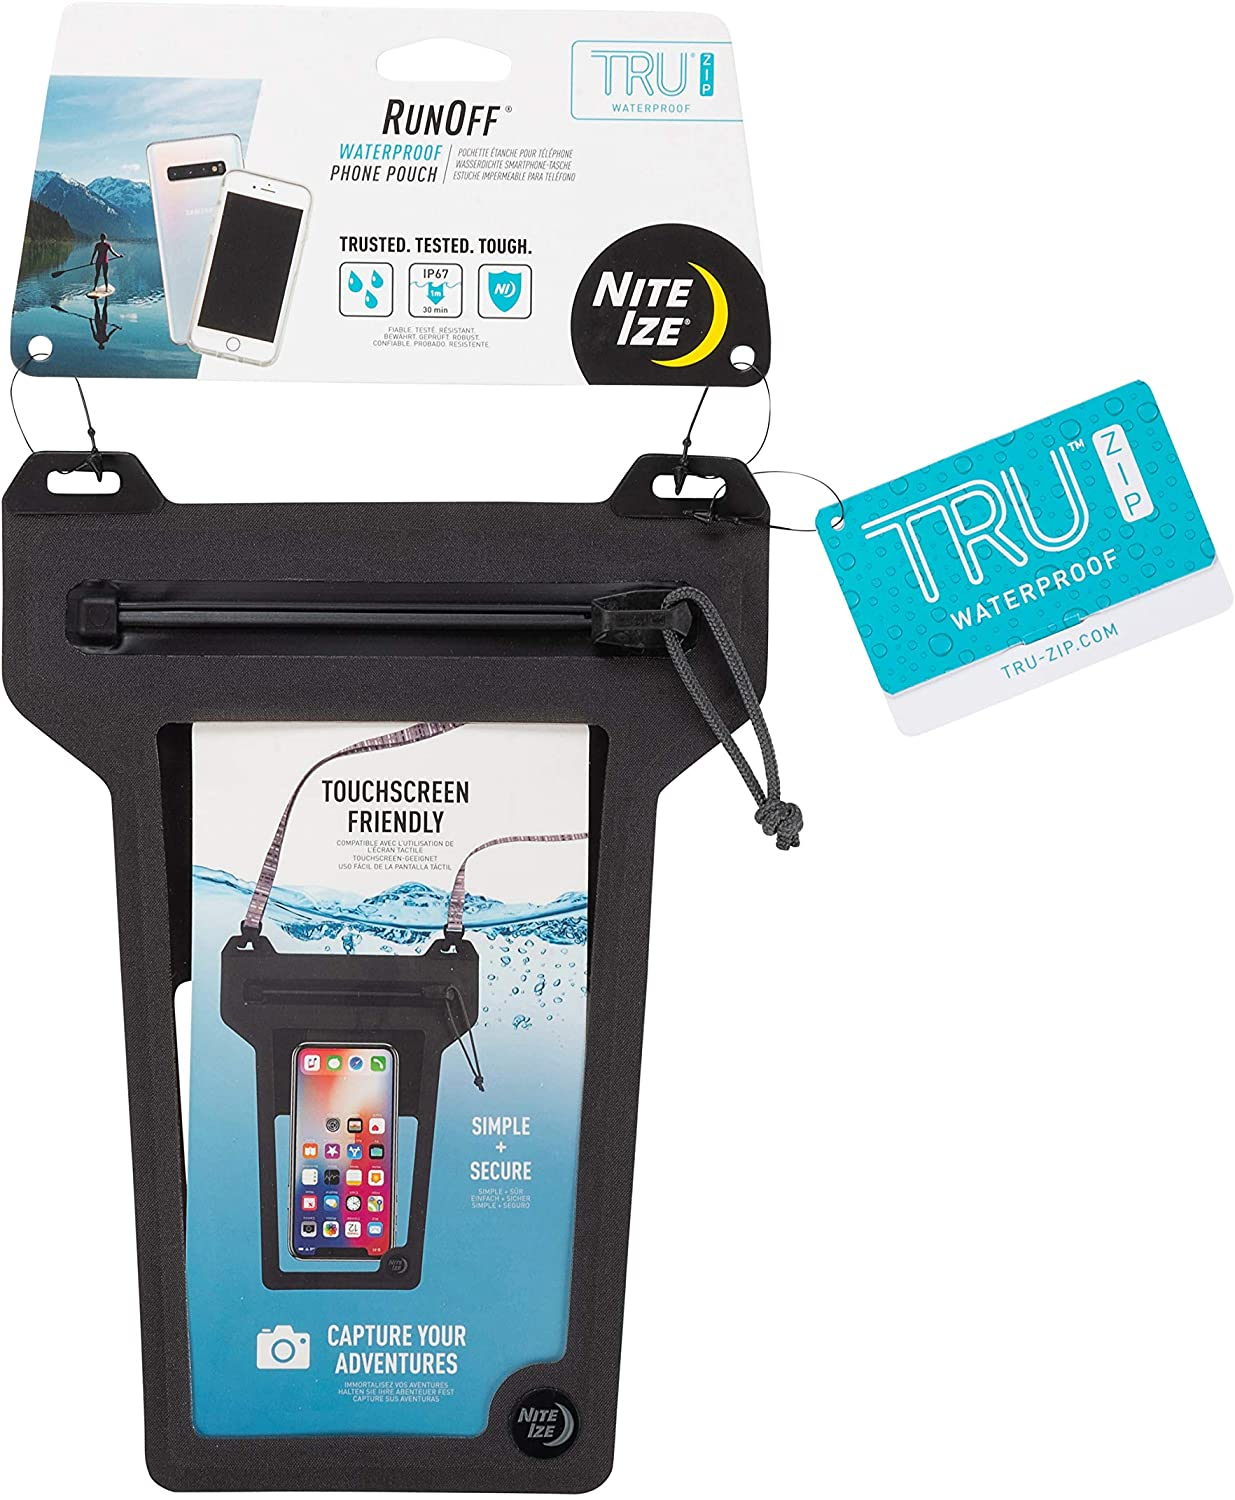 Nite Ize Runoff Waterproof Phone Pouch with Lanyard and Zipper, IP67 Universal Waterproof Case for iPhone 11/11 Pro Max/Xs Max/XR/X/8/8P Galaxy, Charcoal (ROPPL-09-R3)